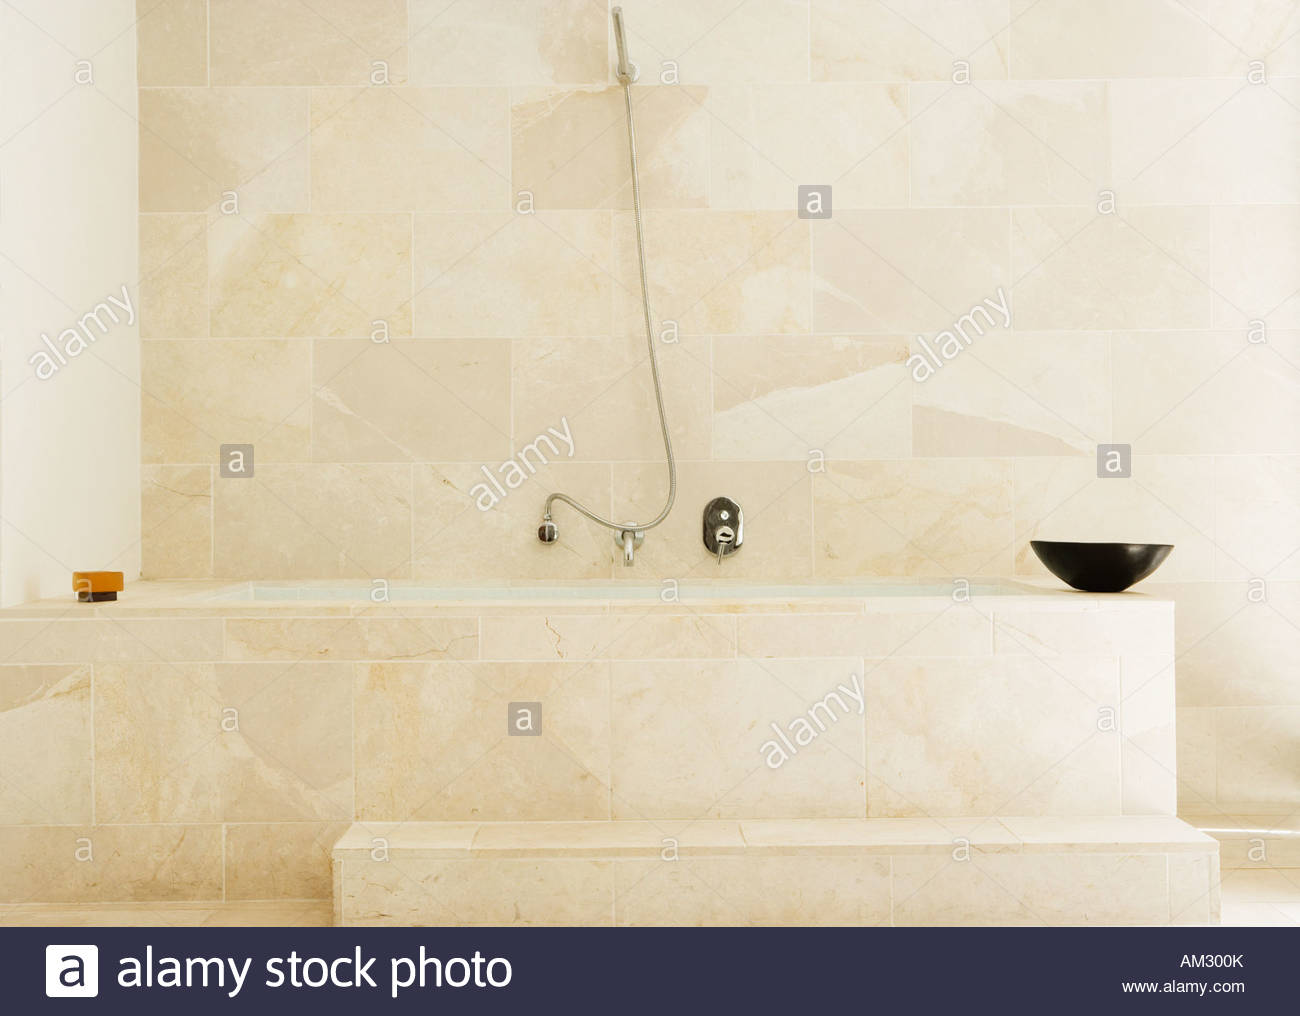 bath tubs showers stockfotos bath tubs showers bilder alamy. Black Bedroom Furniture Sets. Home Design Ideas